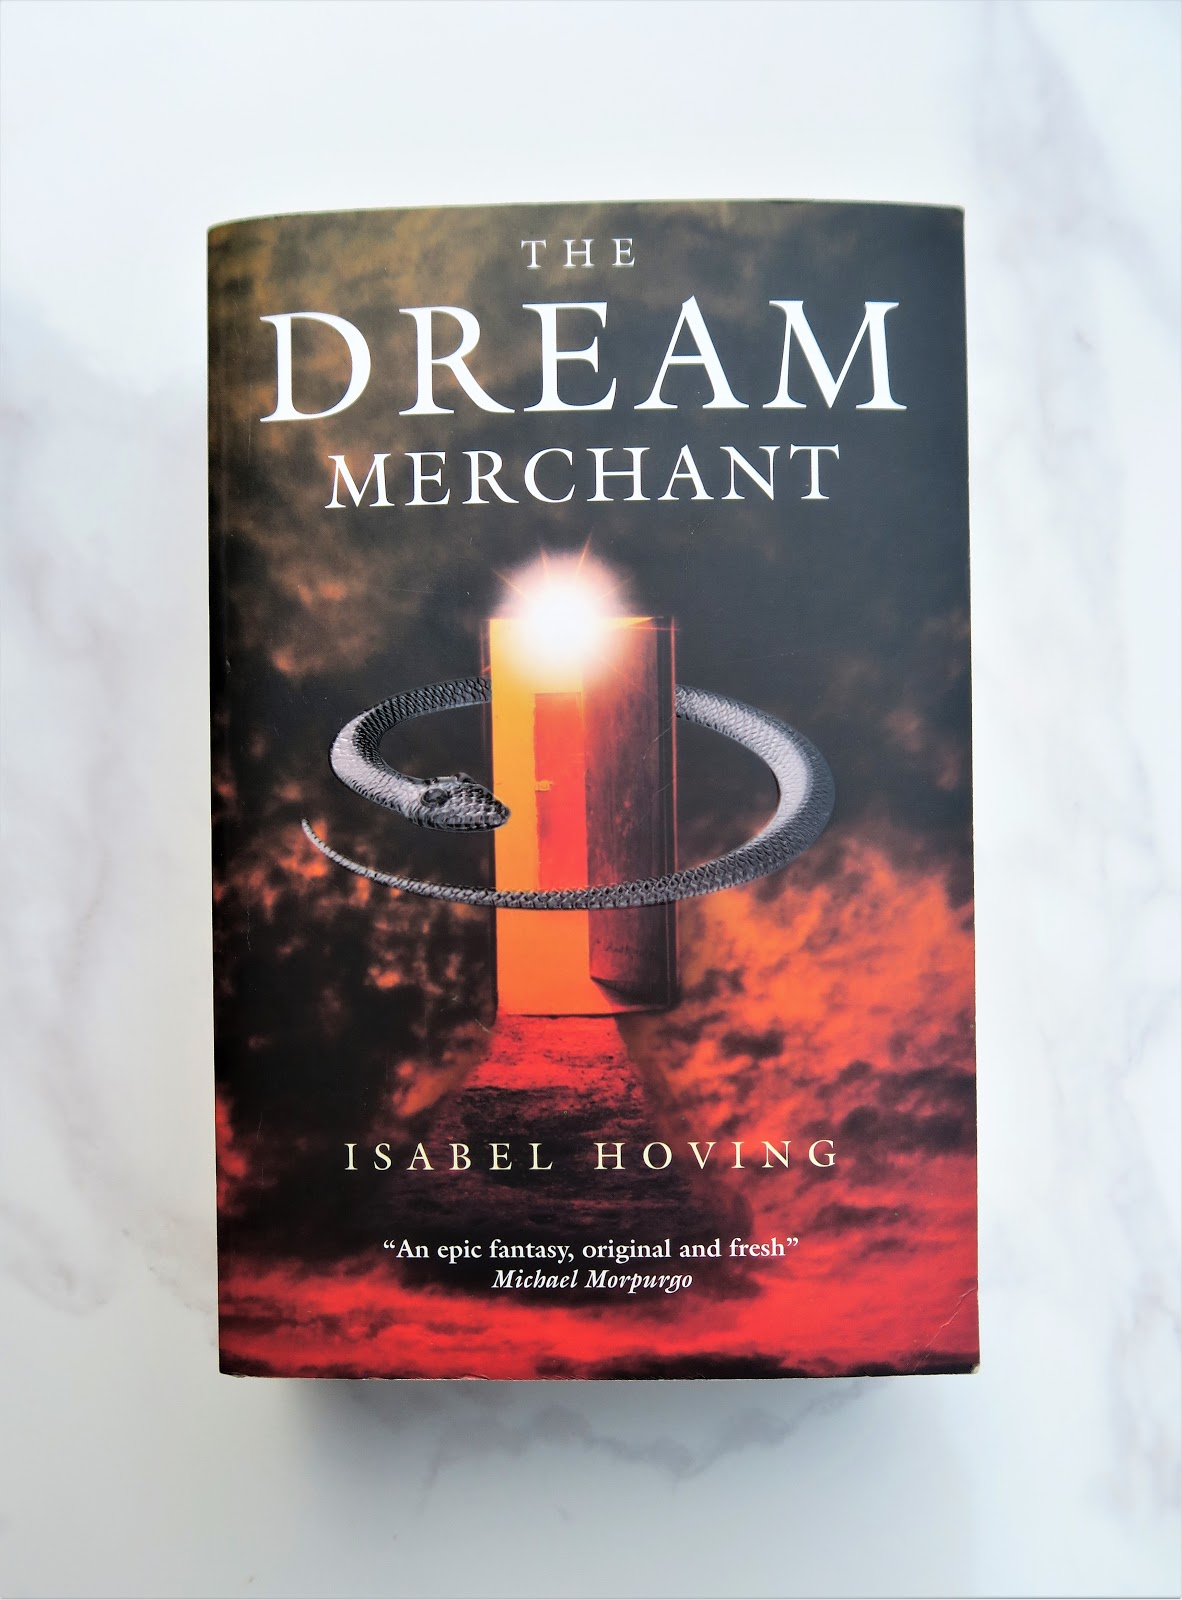 the dream merchant isabel hoving review liquidgrain liquid grain